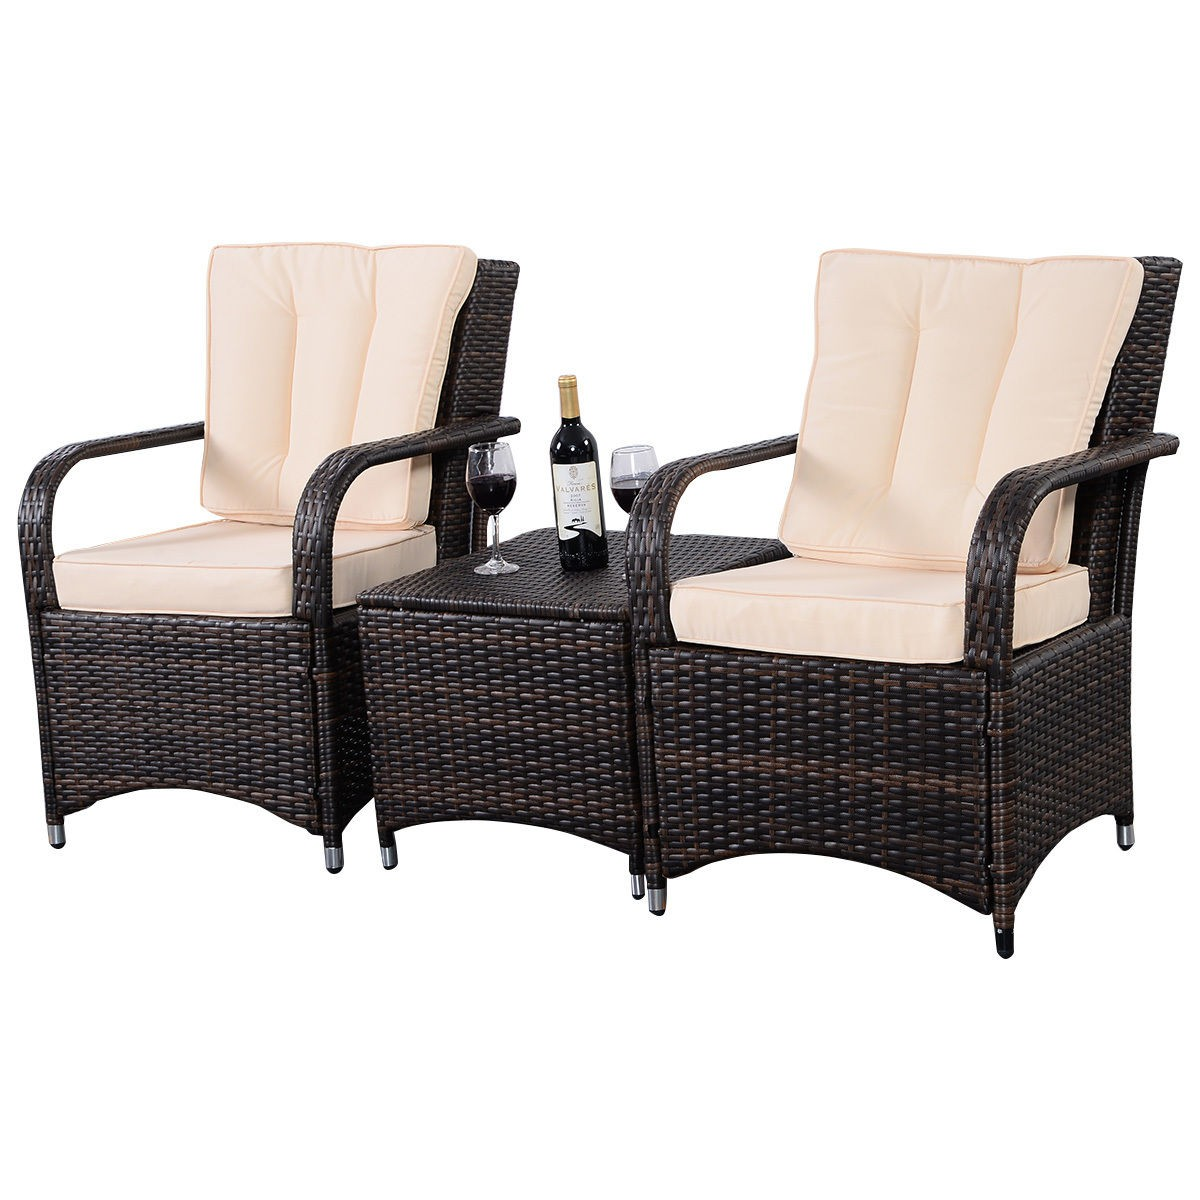 Wicker Patio Chair 3 Qualited Patio Pe Rattan Wicker Furniture Set Outdoor